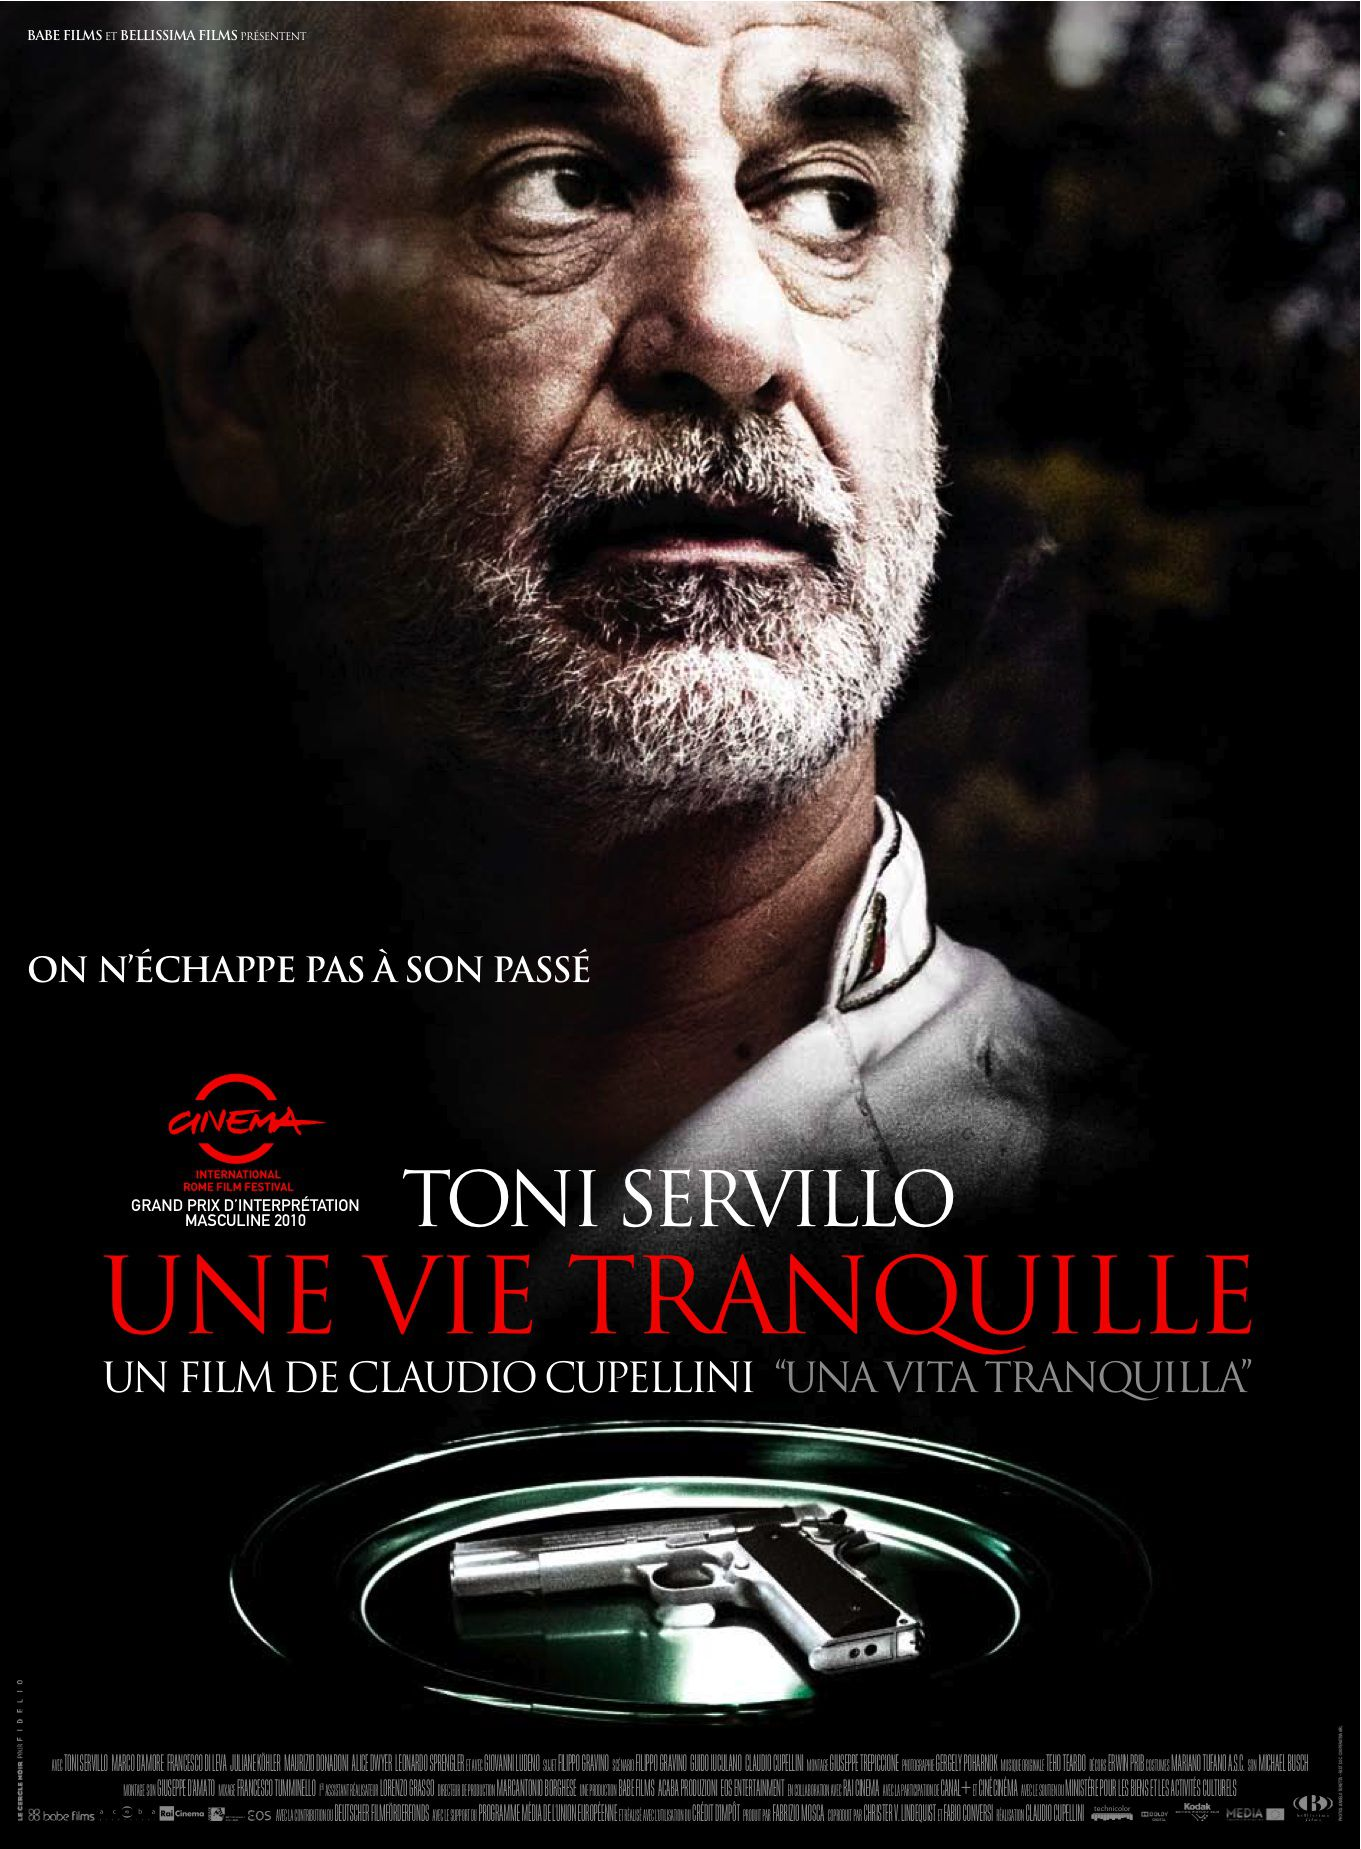 Une vie tranquille - Film (2011) streaming VF gratuit complet